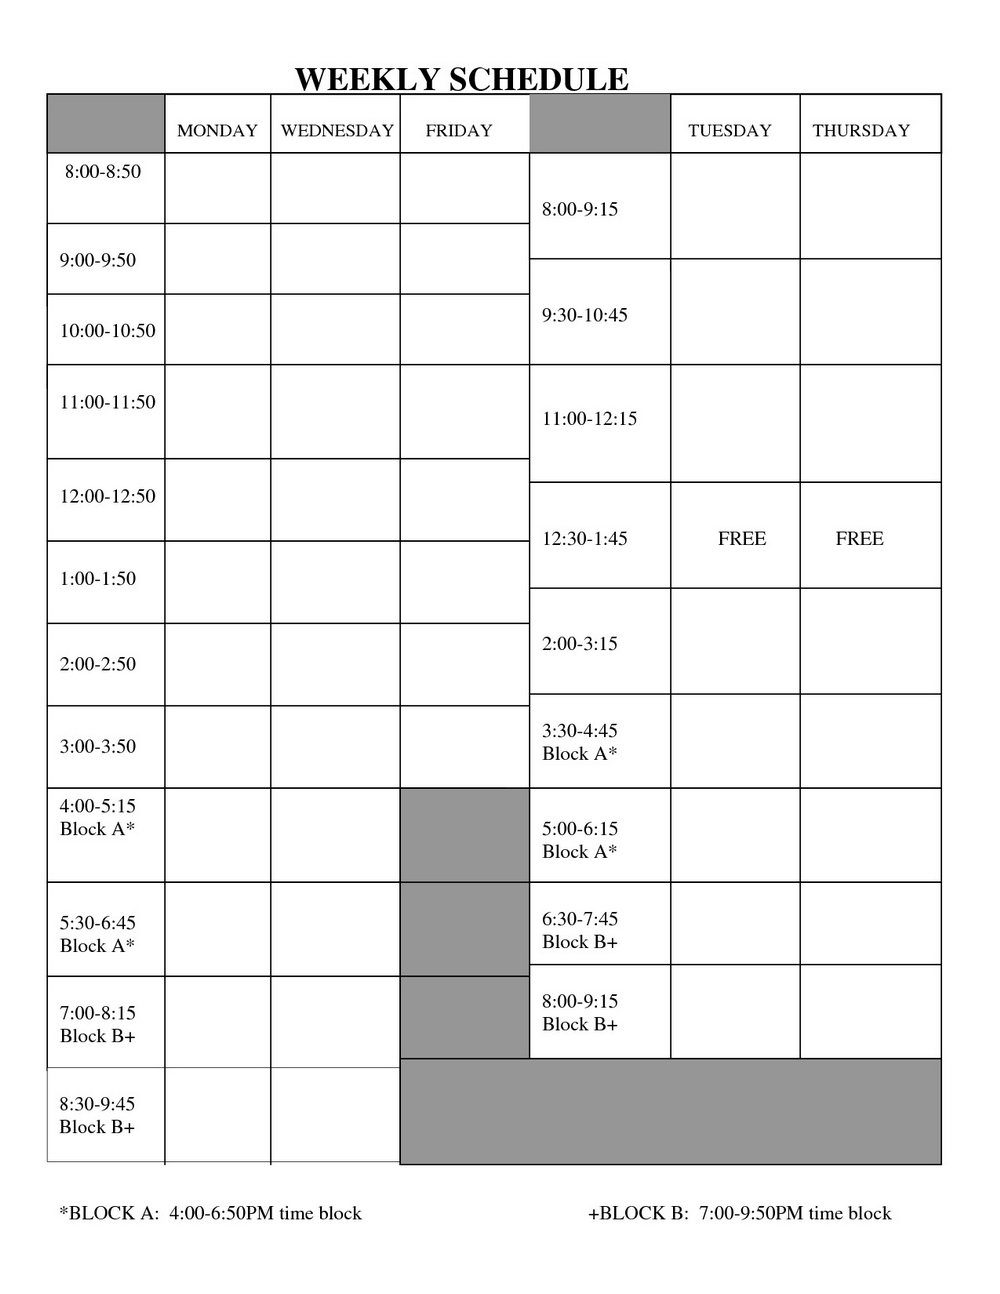 Daily Staffing Schedule Template